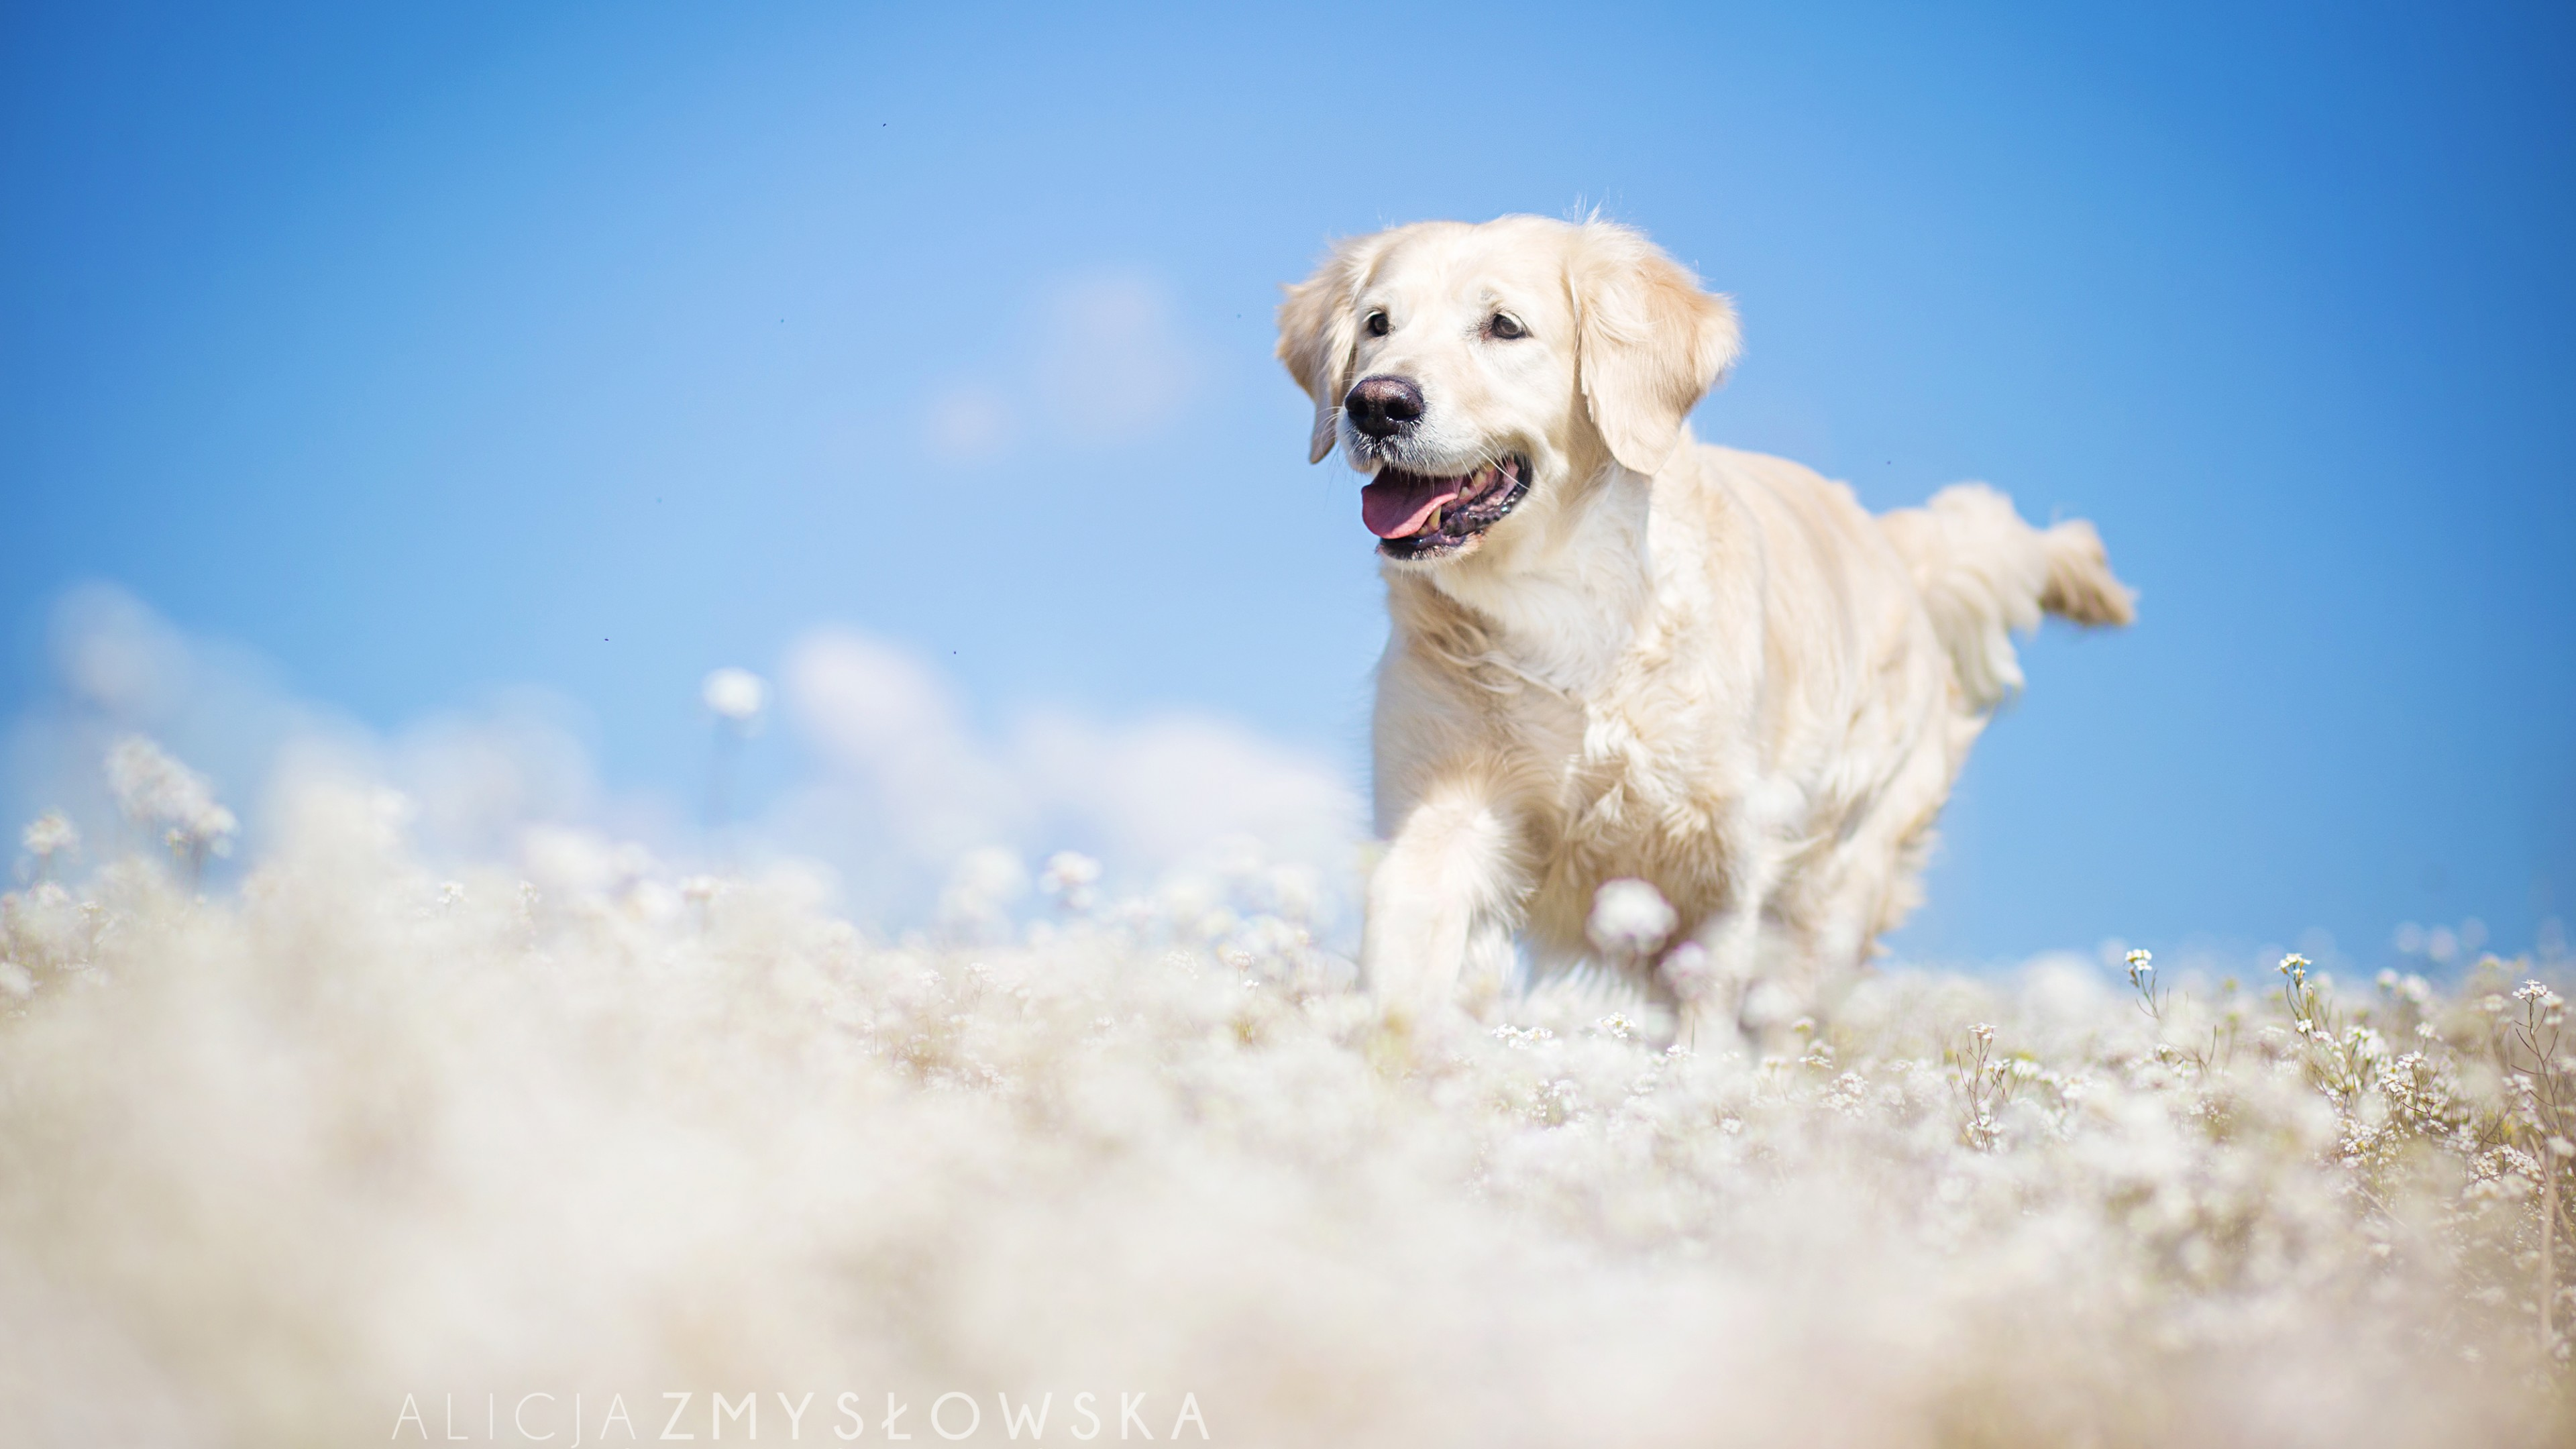 Funny Hd Quotes Wallpapers Wallpaper Labrador Dog Field Cute Animals Funny